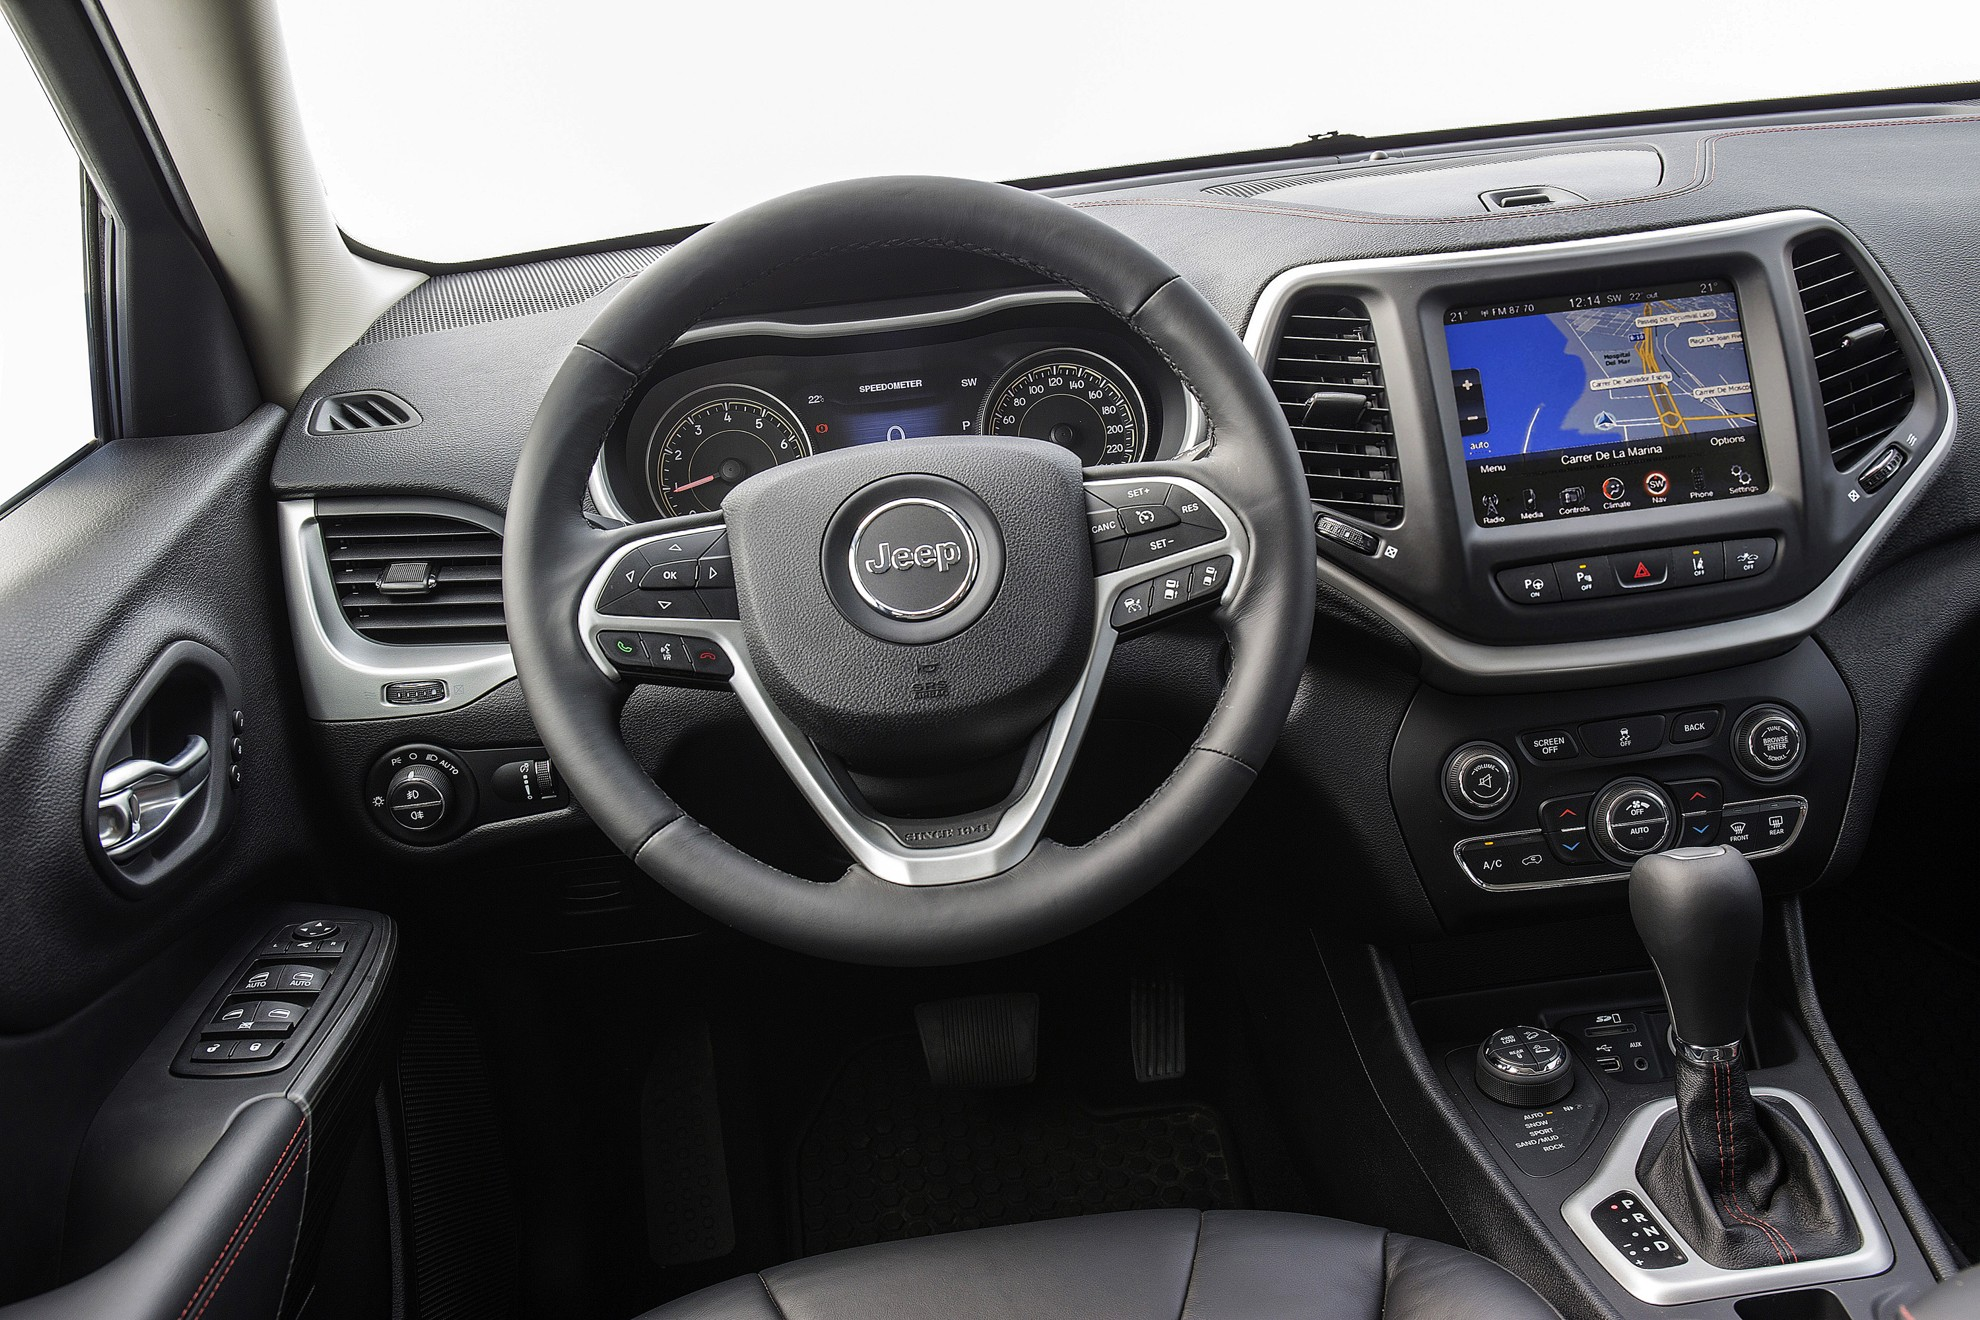 2015 Jeep Grand Cherokee Interior Car Interior Design